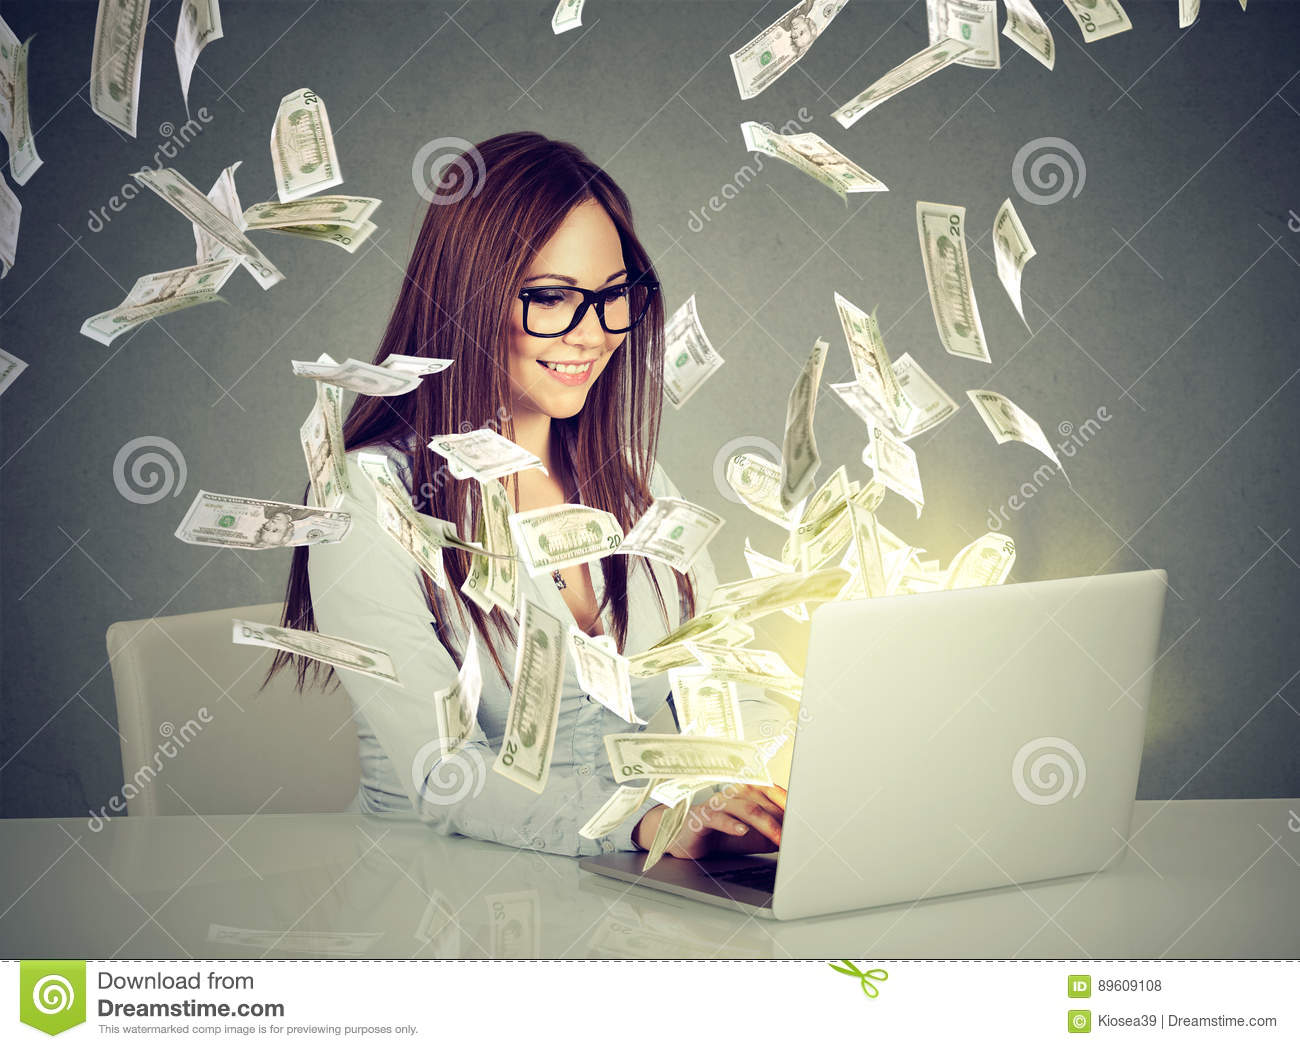 Woman sitting at table using working on a laptop computer making money